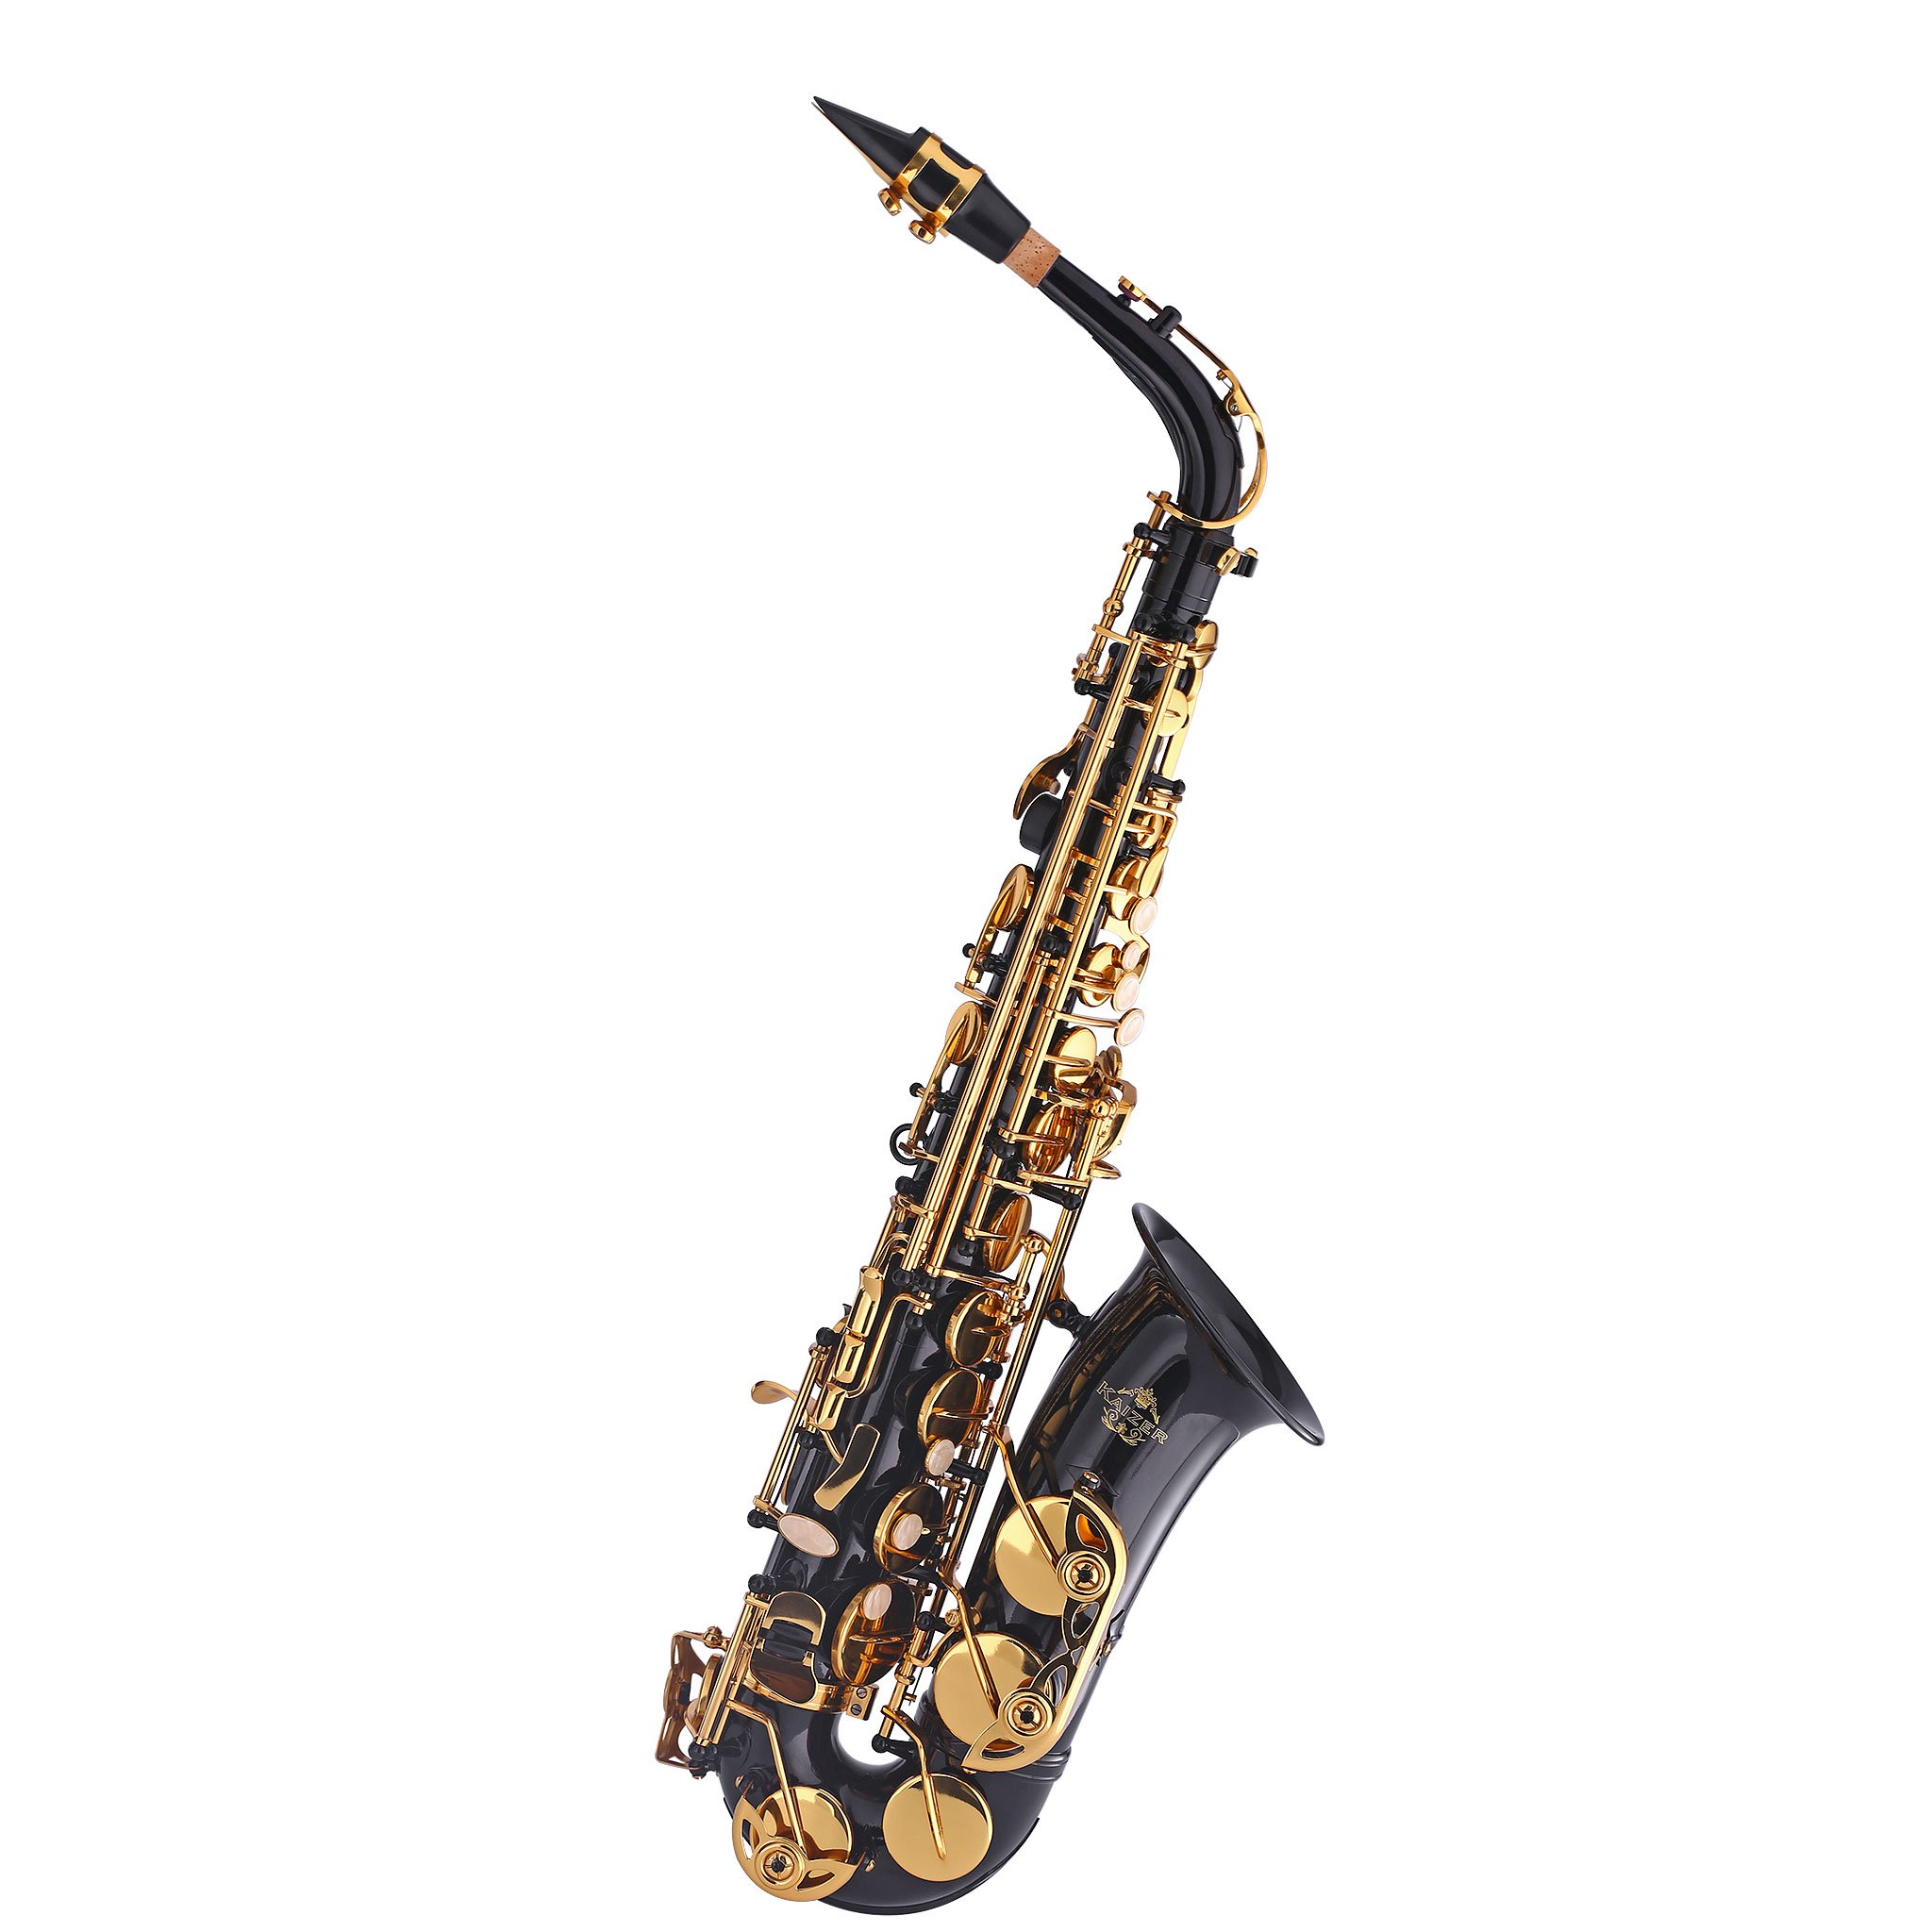 Kaizer Alto Saxophone E Flat Eb Black Lacquer Body Gold Keys 1000 Series Sax Includes Case Mouthpiece and Accessories ASAX-1000BKGK by Kaizer (Image #1)